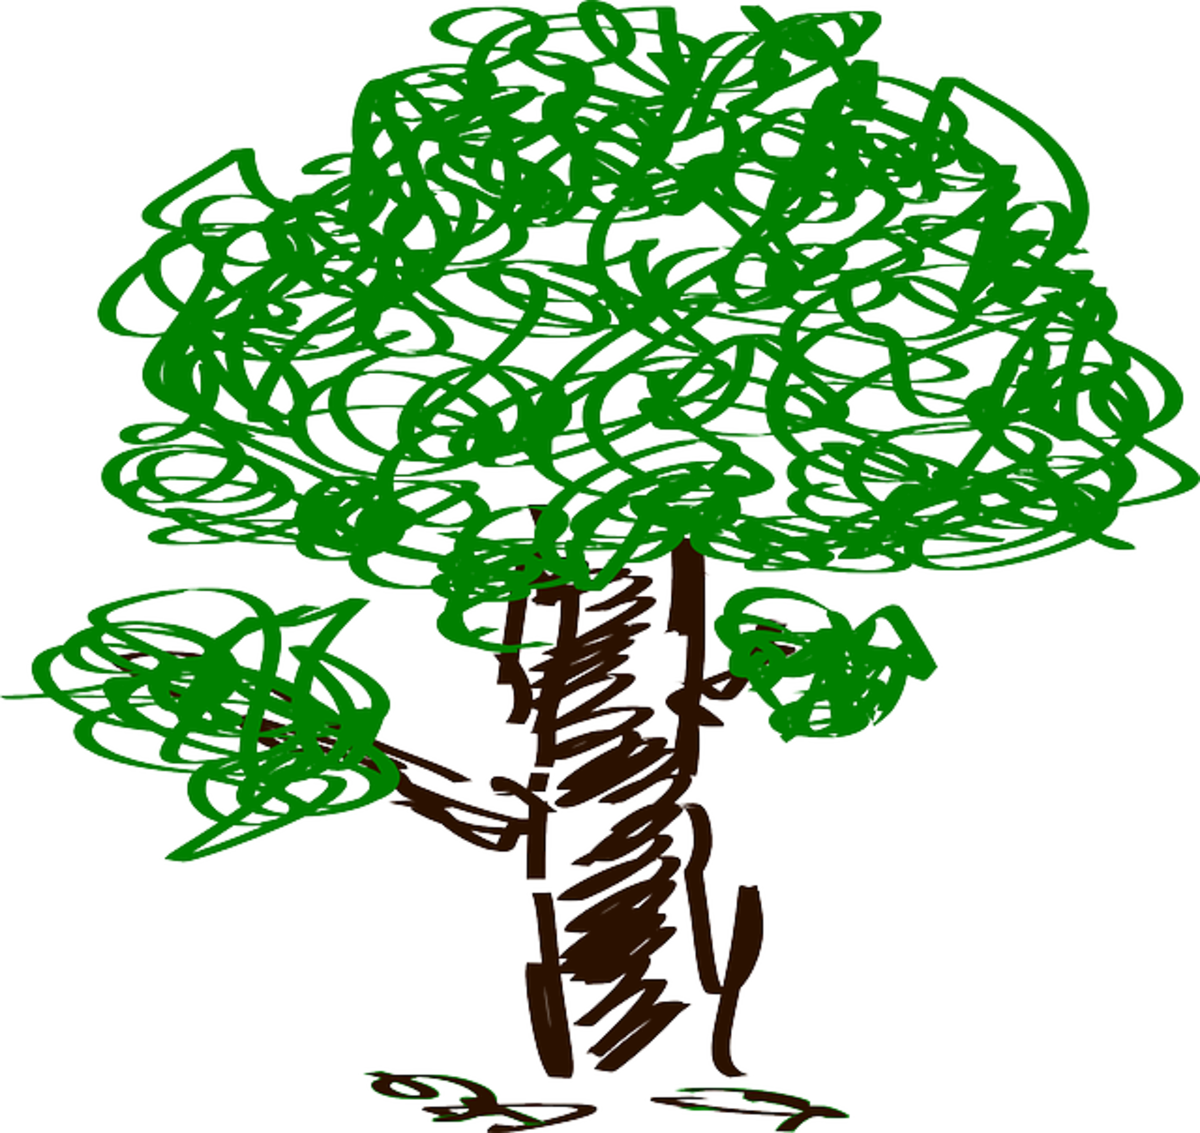 Scribble Drawing of Tree